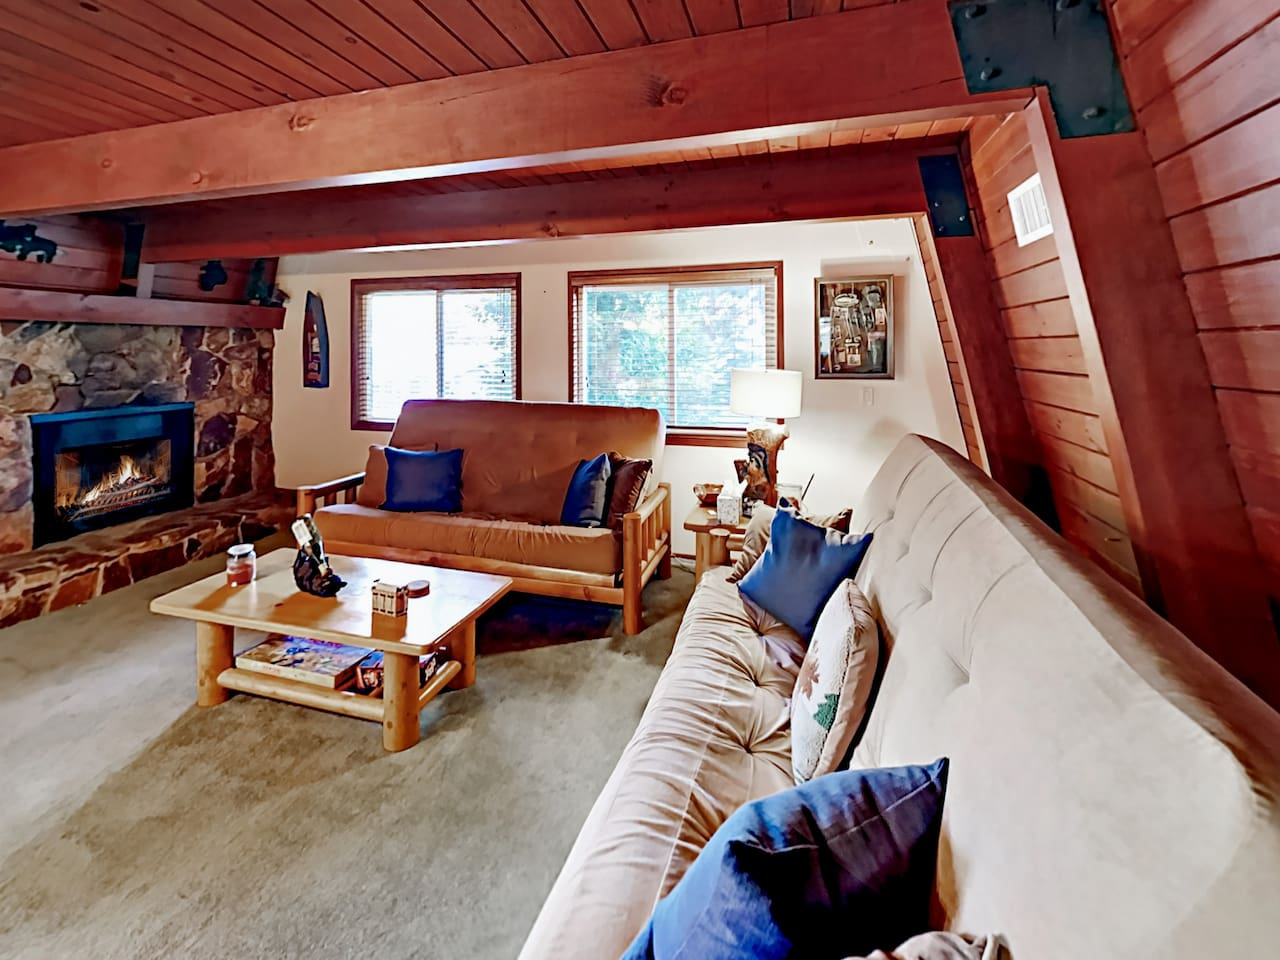 Welcome to Big Bear City! With 2 large sofas and a striking stone fireplace, the living room serves as the social heart of this home.